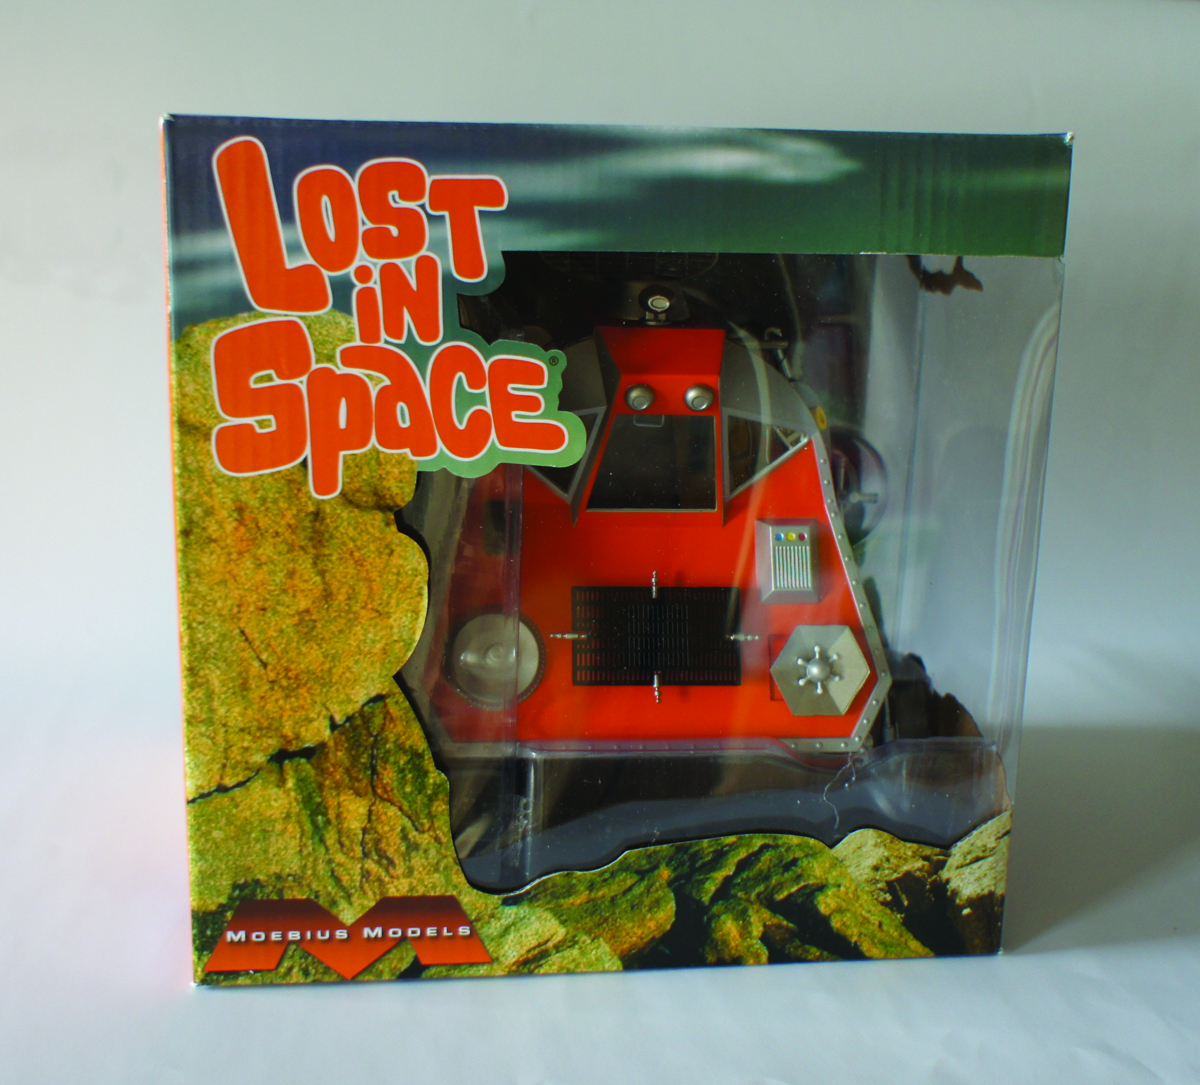 LOST IN SPACE SPACE POD 1/24 FINISHED MODEL KIT